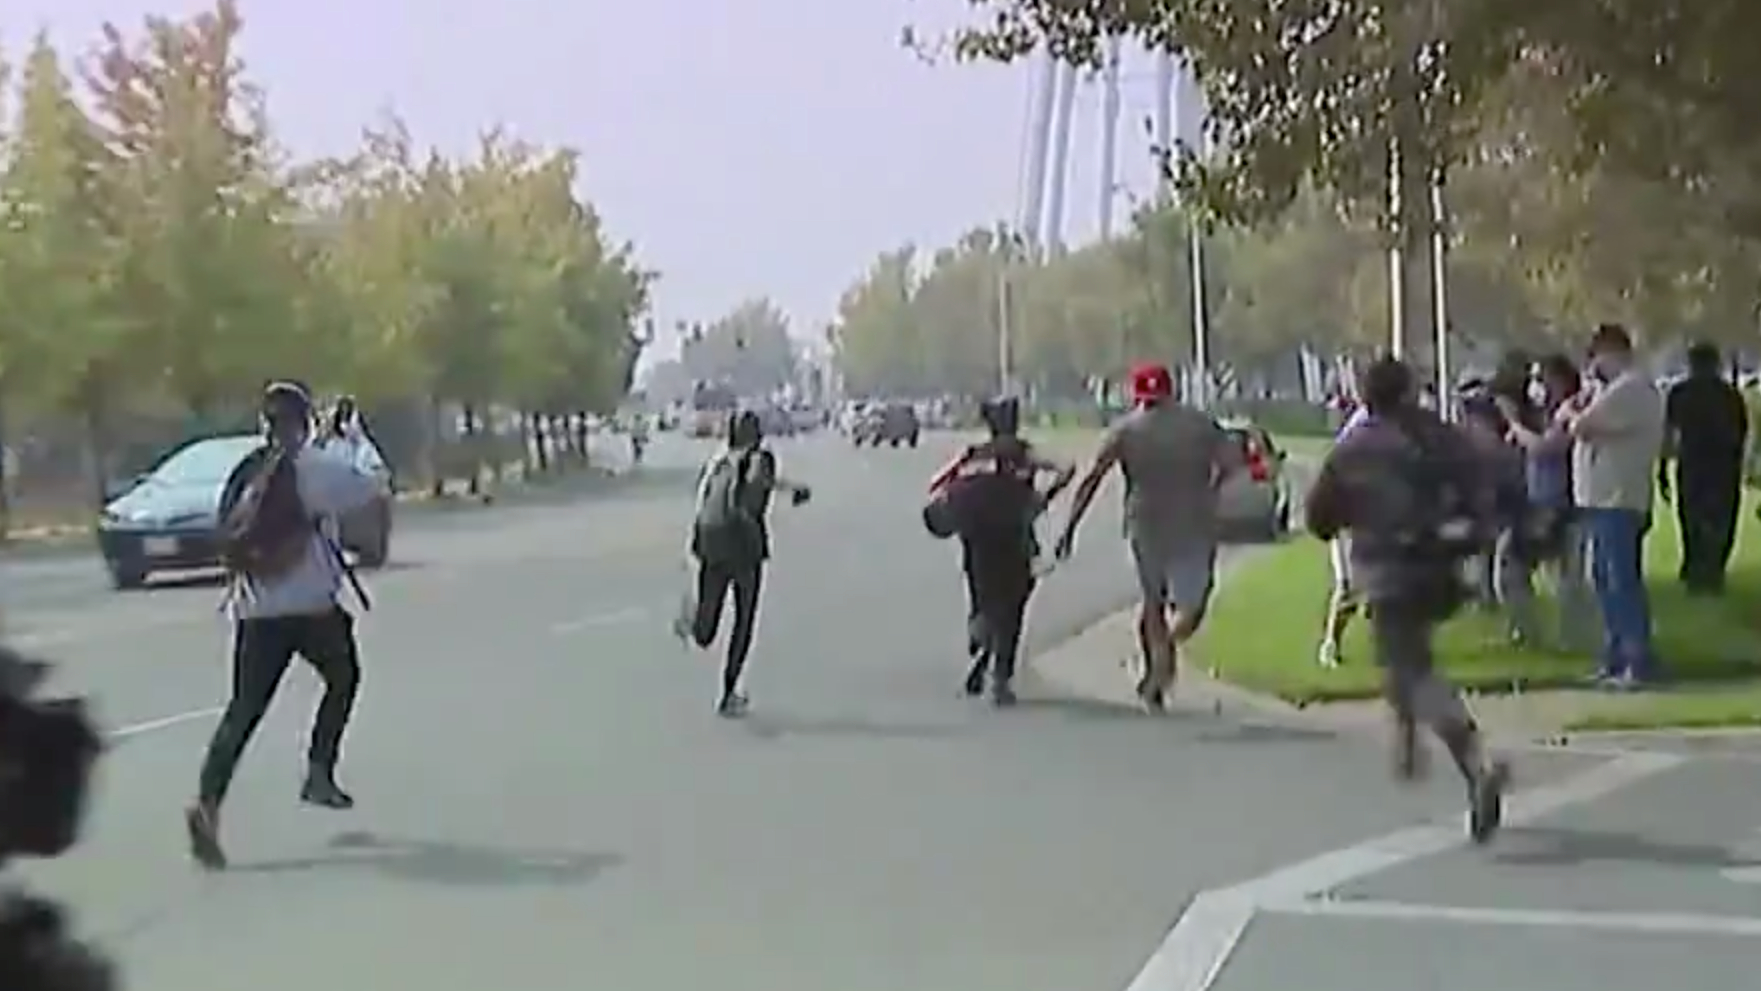 Protesters chase after a car after it swerved into a group of people near McClellan Air Force Base during a visit from President Donald Trump on Sept. 14, 2020. (KTXL)